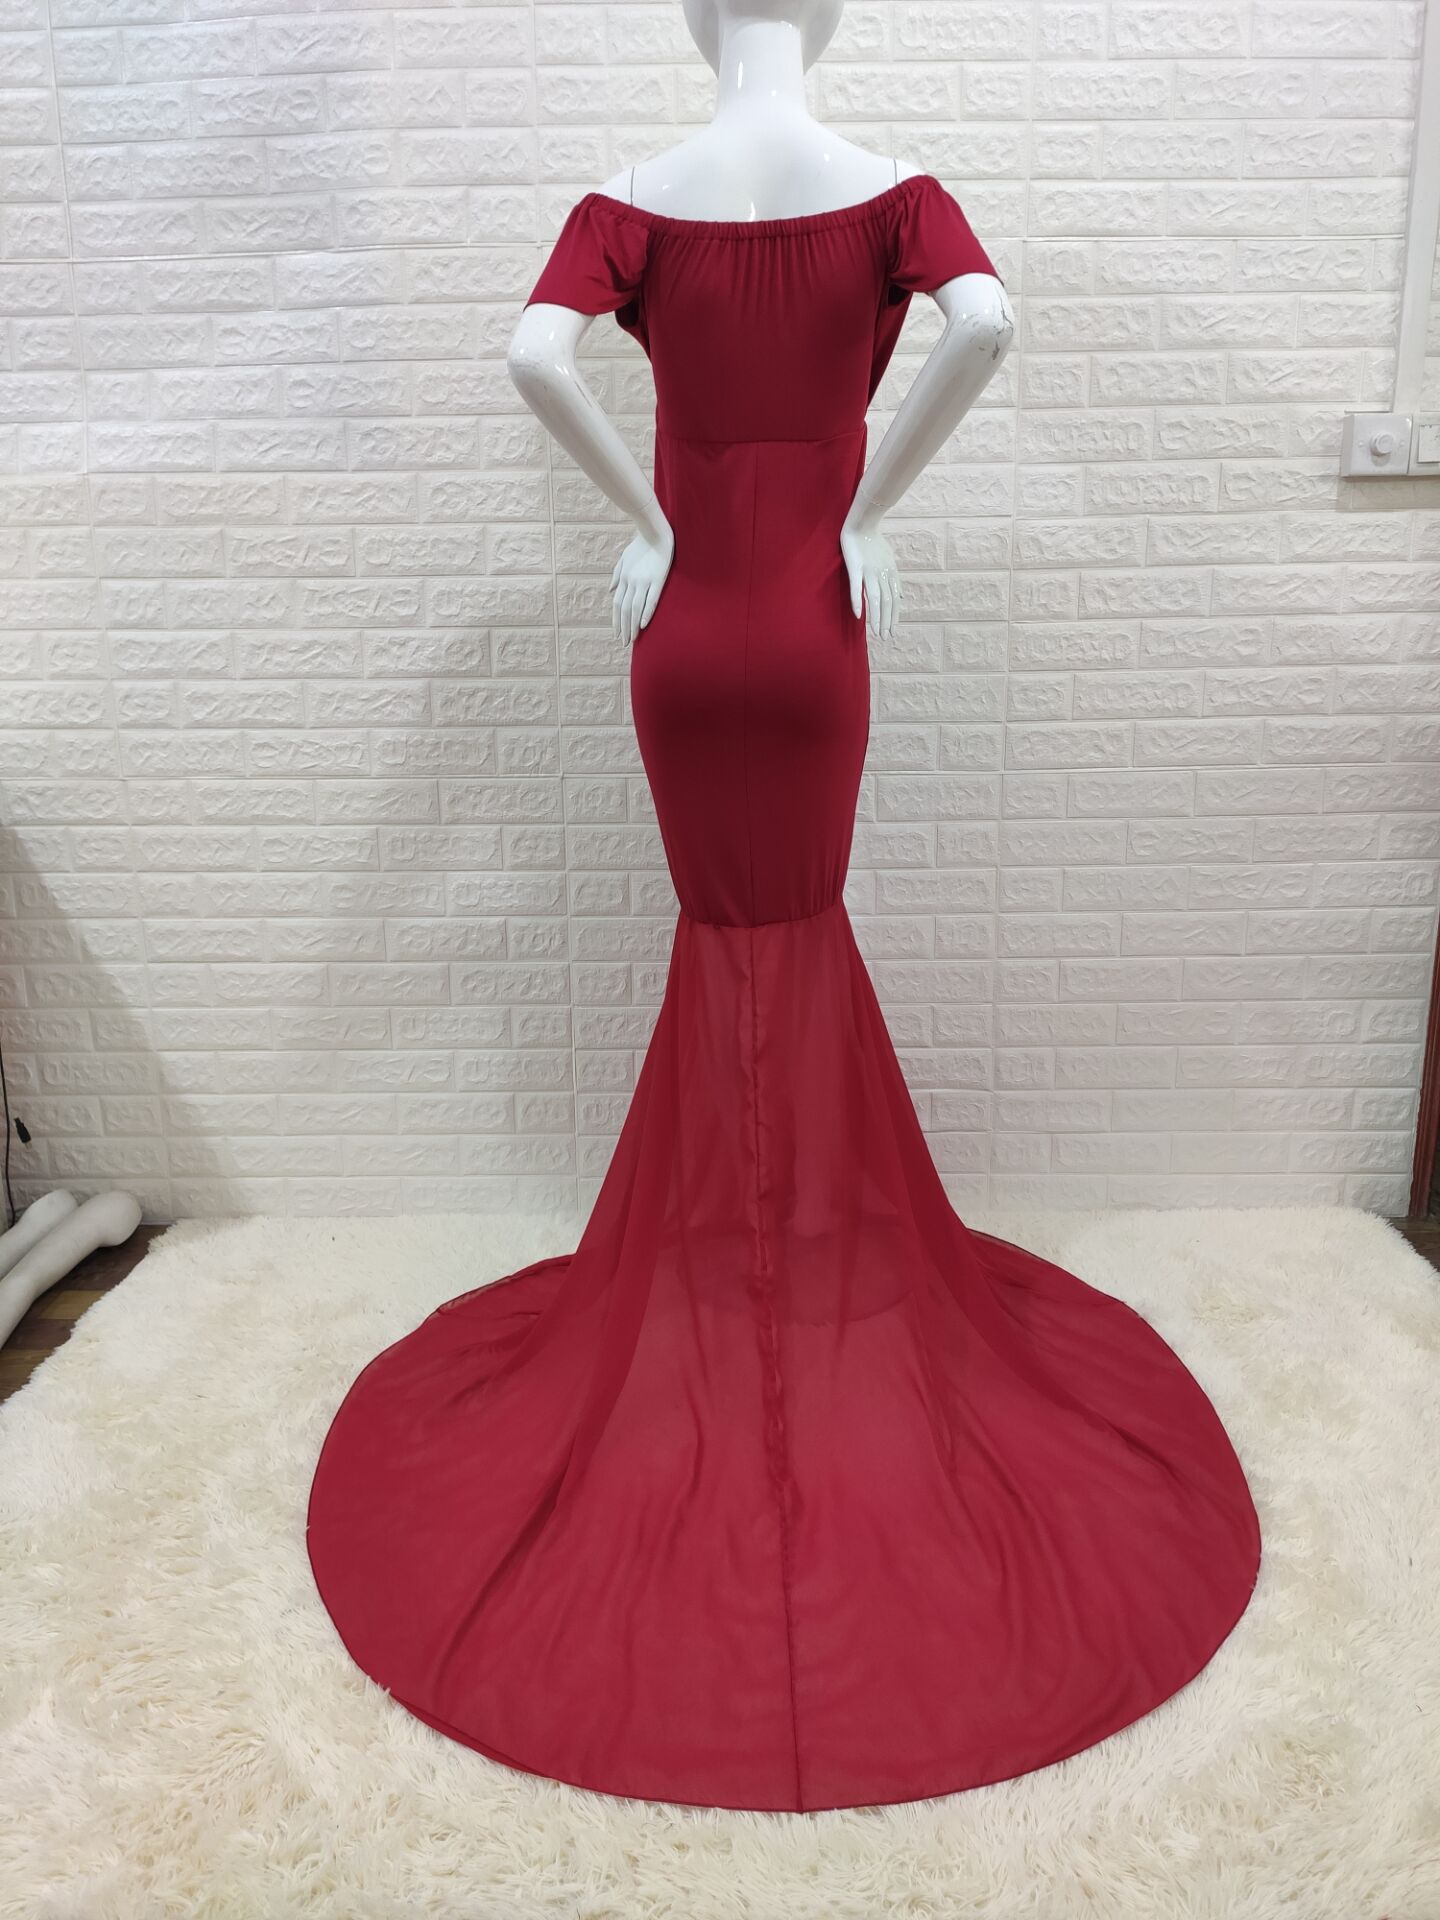 Off Shoulder Mermaid Maternity Dresses Photo Shoot Pregnant Women Sexy Maxi Pregnancy Gown Baby Shower Photography Props Clothes enlarge